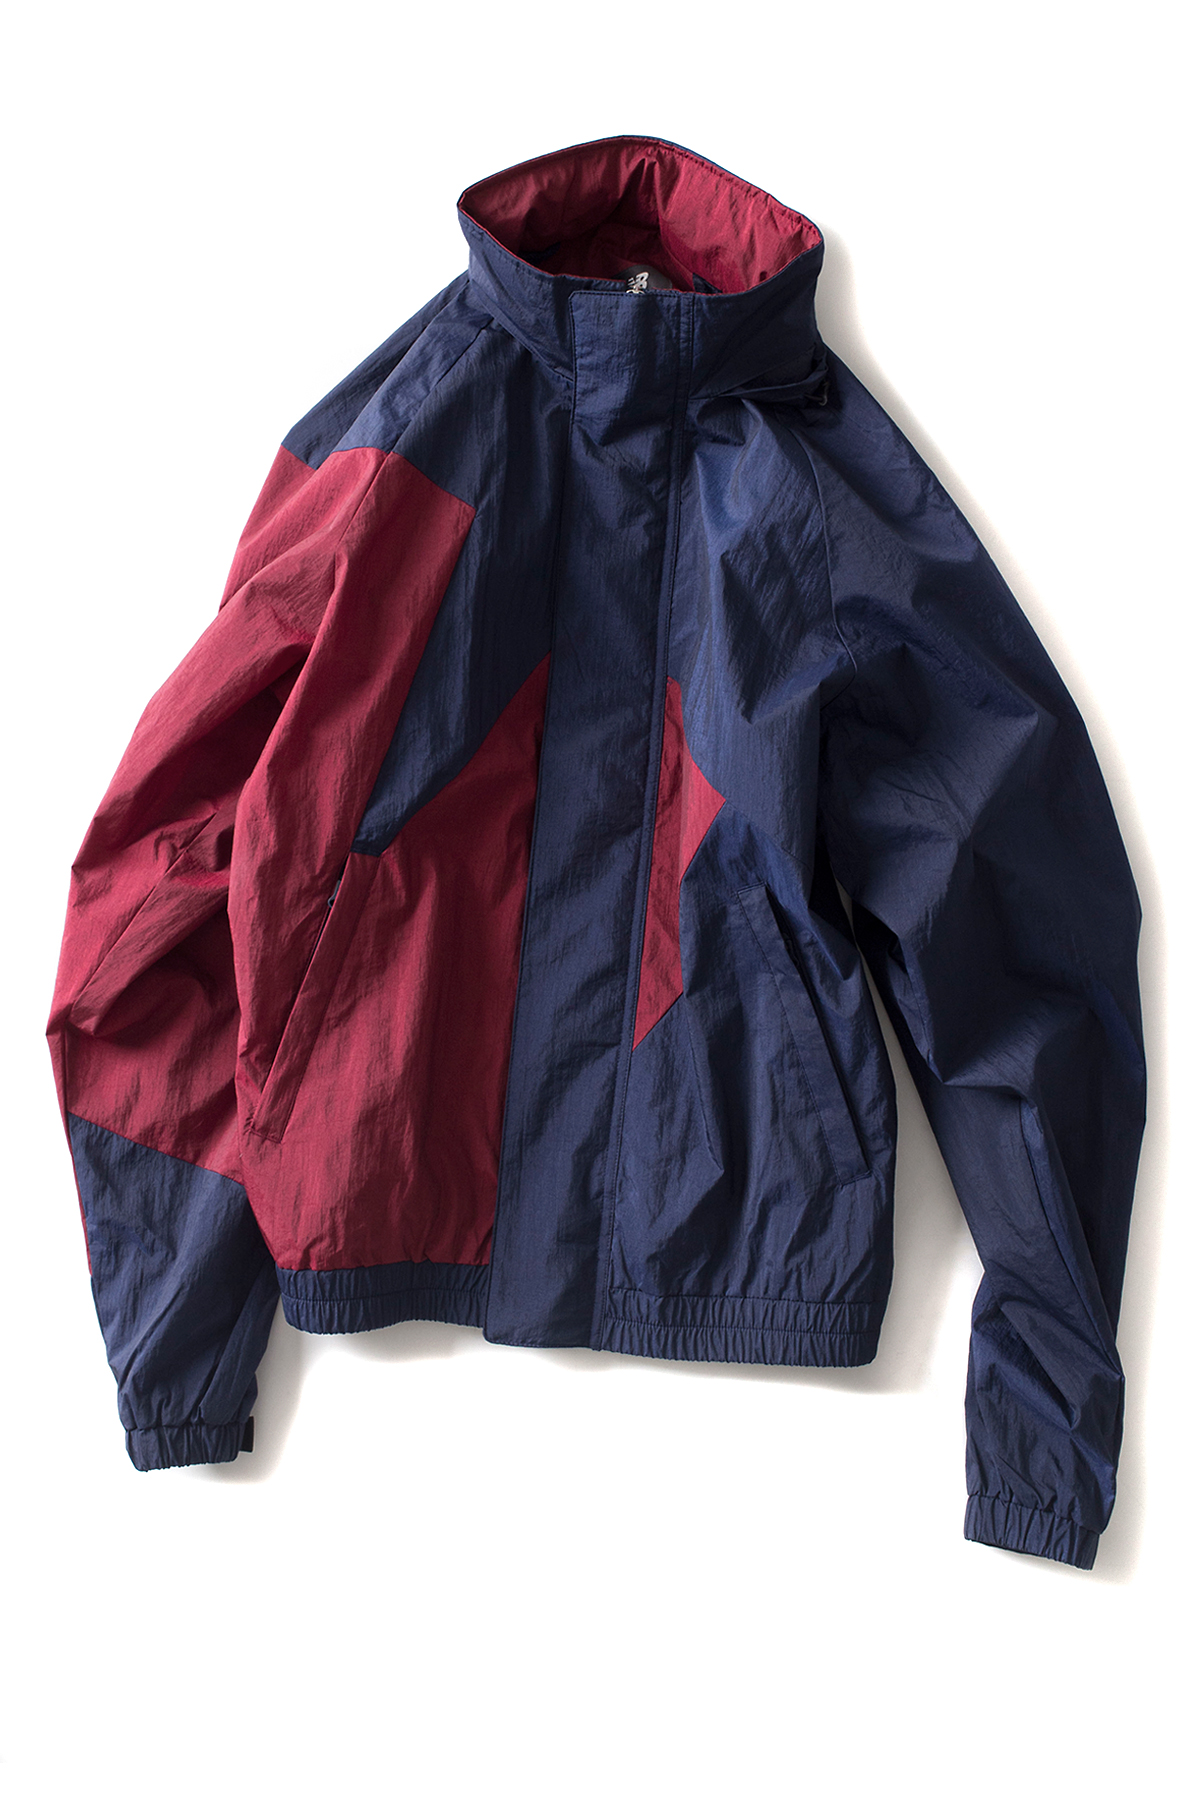 New Balance : UNI Classic Woven Warm Up Jacket (Navy)